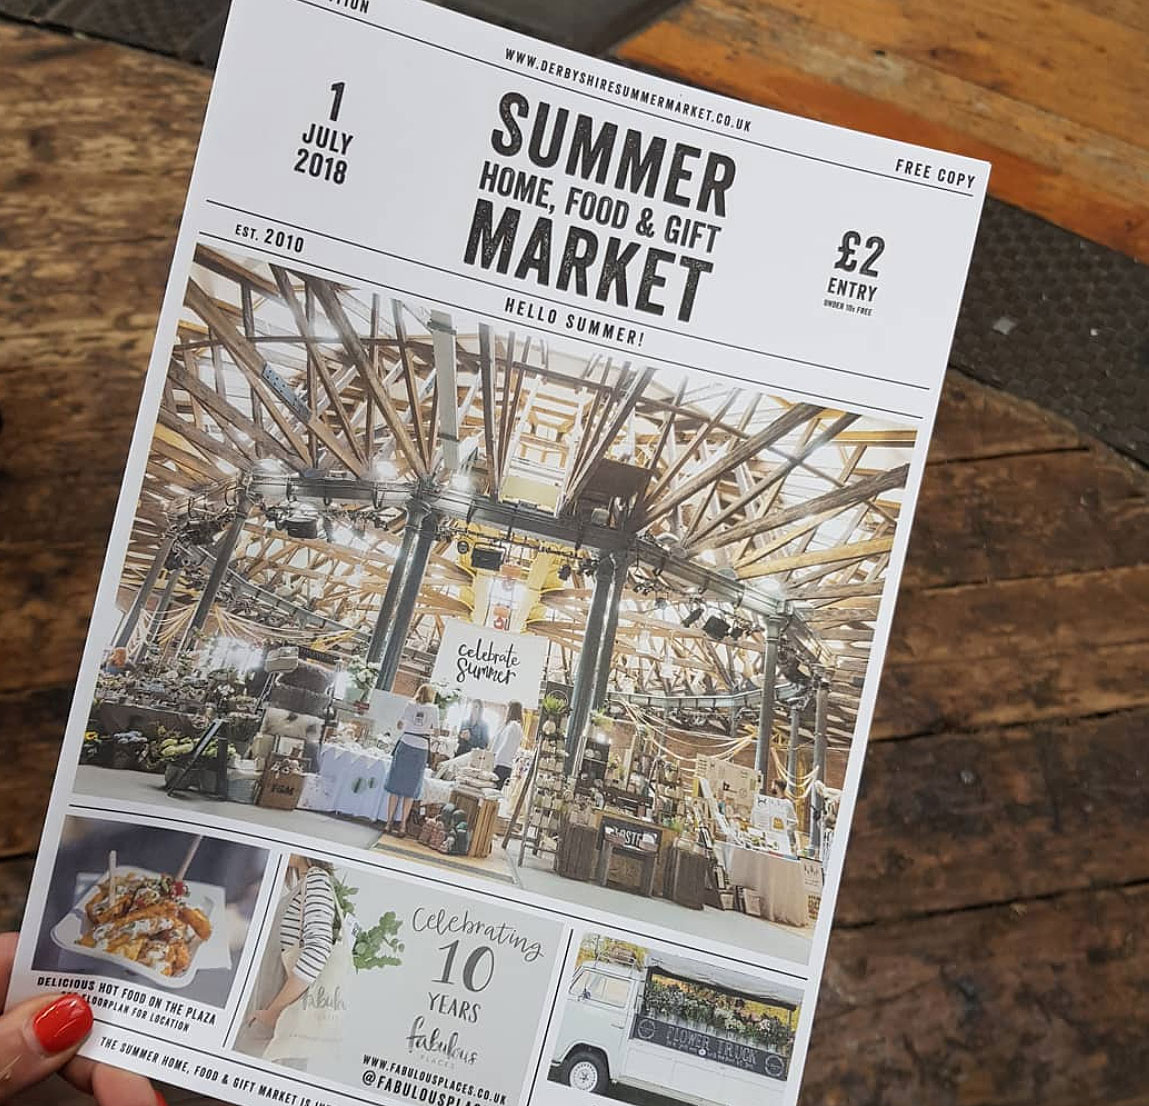 derbyshire summer market presented by fabulous places at the roundhouse, derby